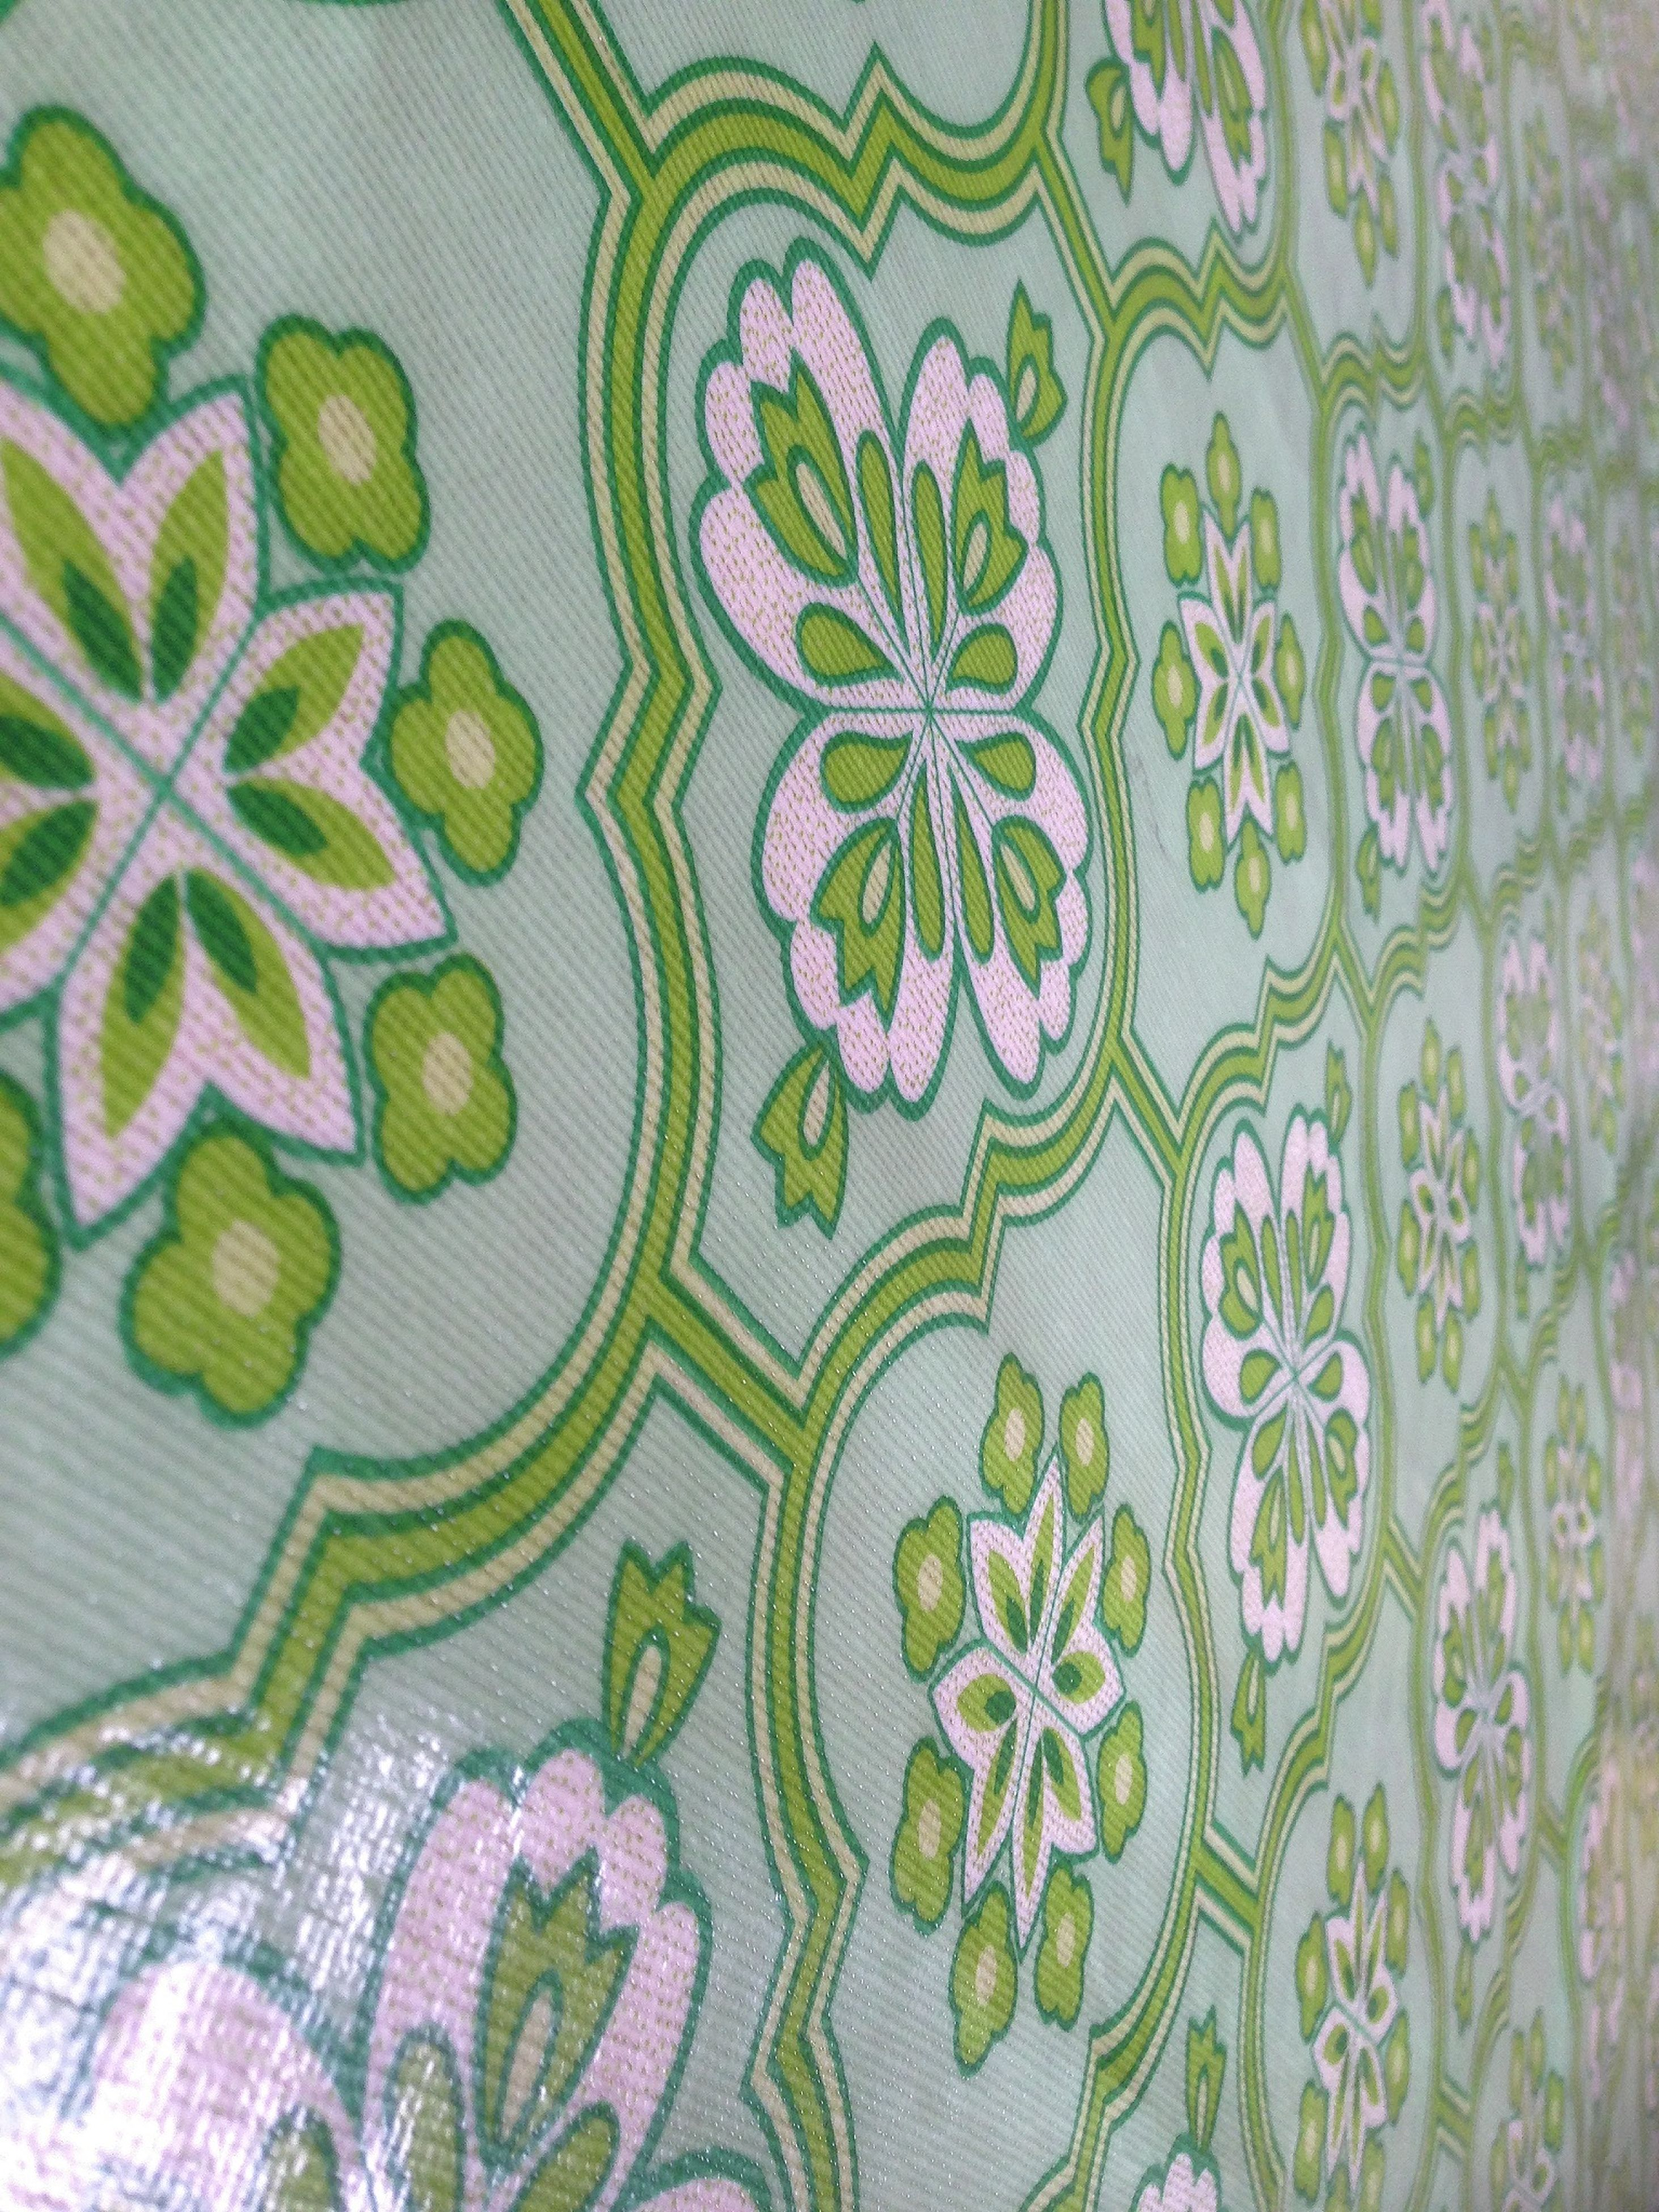 indoors, pattern, design, full frame, floral pattern, green color, backgrounds, wall - building feature, art and craft, creativity, art, close-up, leaf, high angle view, no people, textured, multi colored, textile, plant, decoration